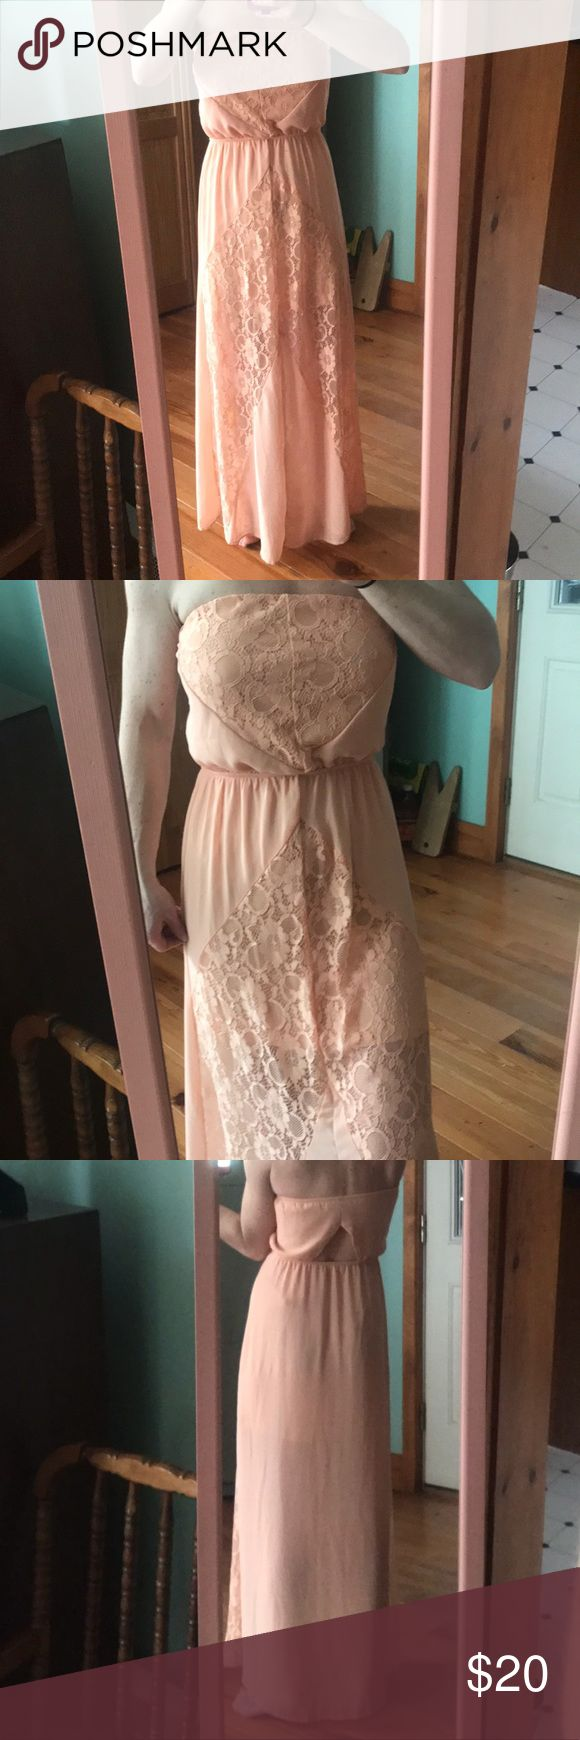 Peach dress, XS from Charlotte Russe I'm new to this site and trying my best to get good pics on my own as well as learn what info people need! Please feel free to ask any questions! I will bundle for a great price any items!  Sorry, pale legs not included #Maine Charlotte Russe Dresses